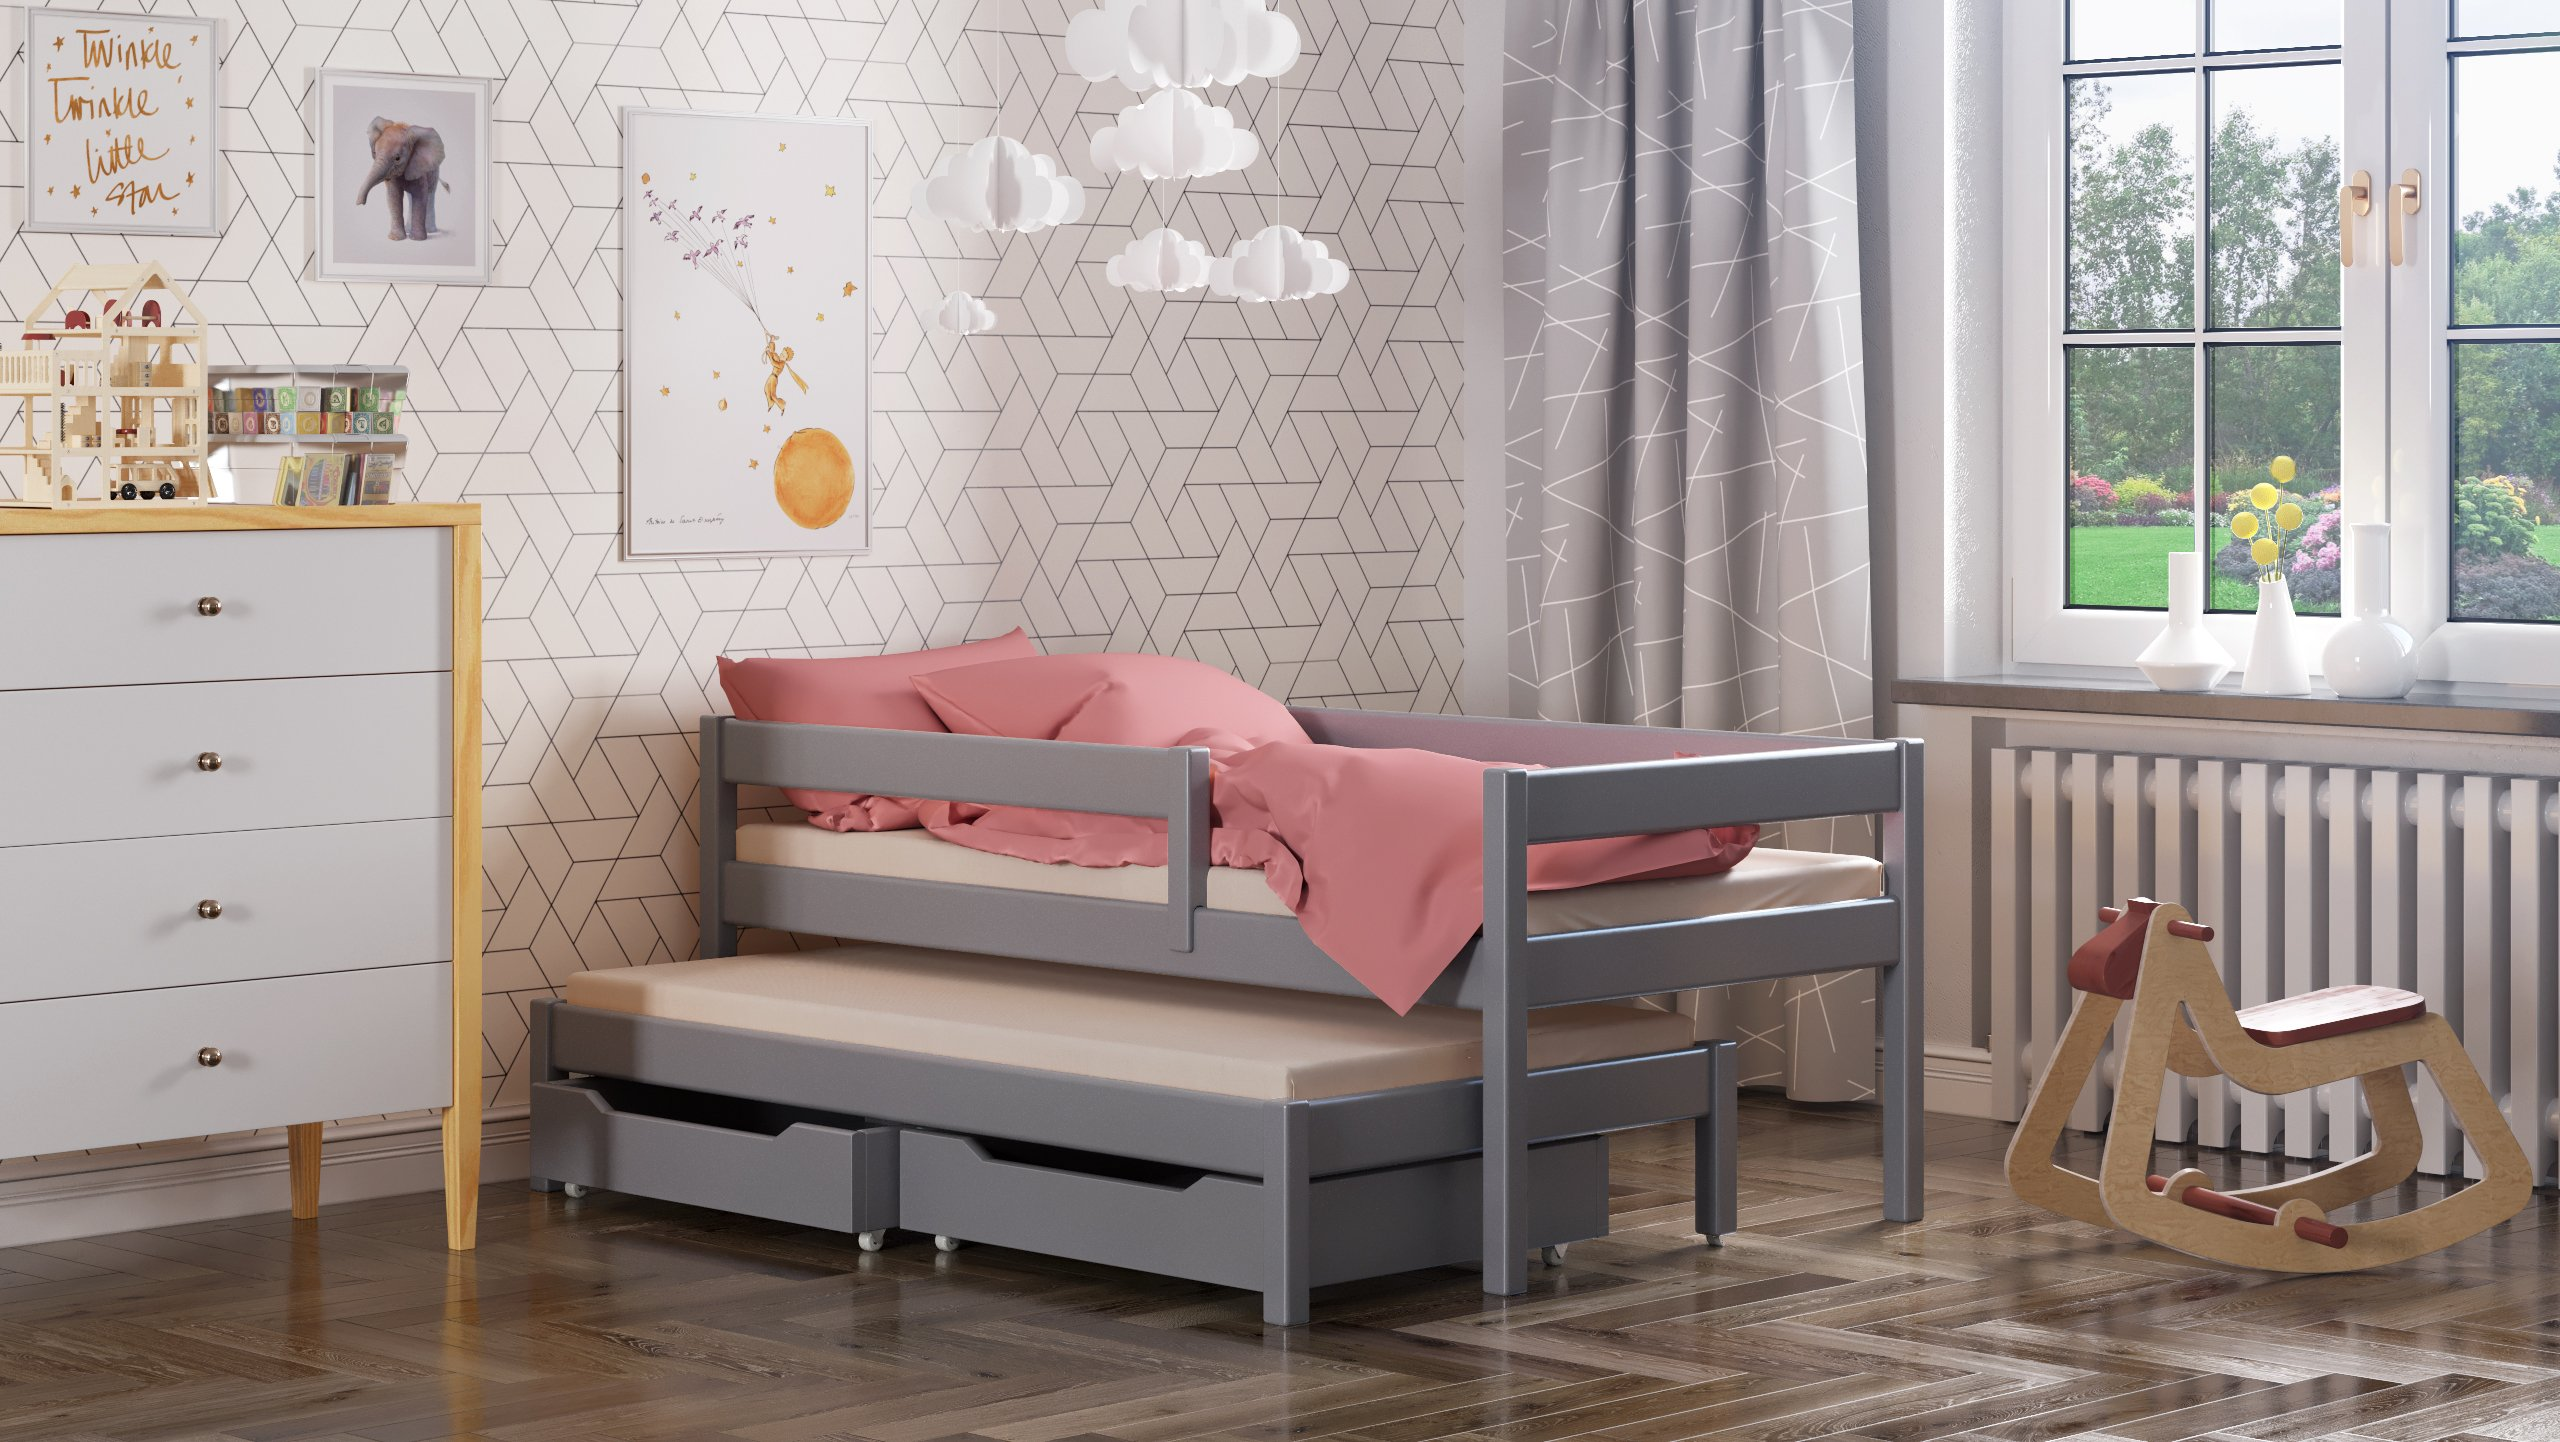 Maria single bed with trundle and drawers for kids made of solid wood - different sizes - 6 colours (Grey, 200x90 / 190x90) WNM Group Bed made entirely of exclusive solid pine wood, frame strength up to 300 kg Protective barrier for size 140x70 is 80cm for other sizes 105cm The bed is suitable for 10-12 cm mattresses. (Mattress is not included) 1